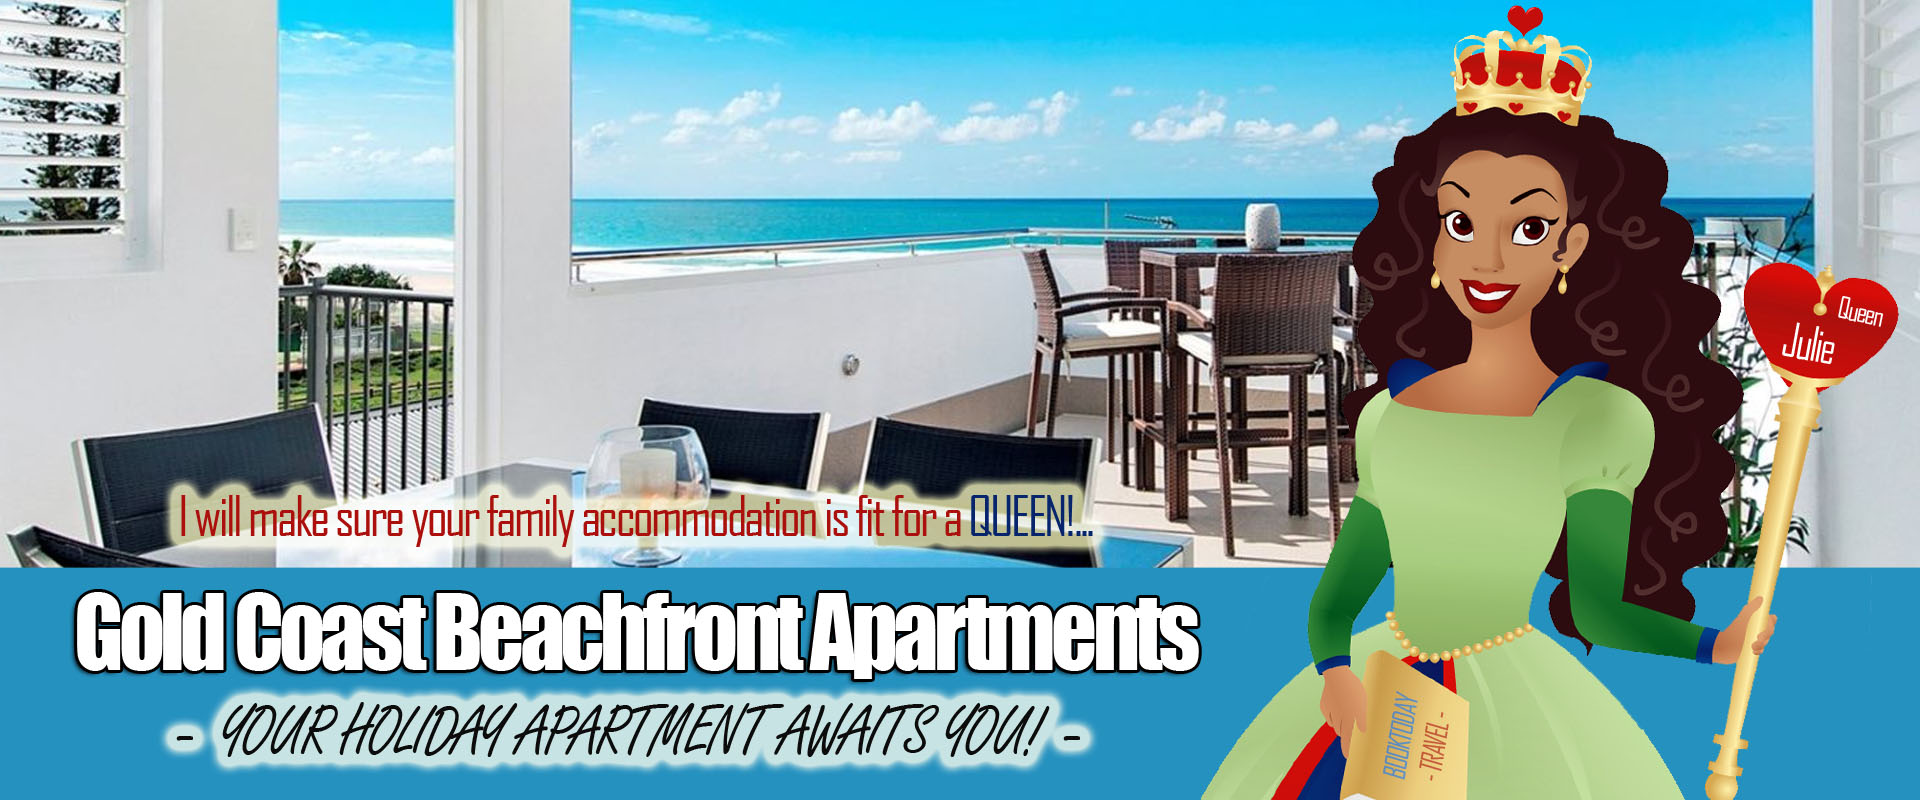 BookToday Gold Coast Accommodation Queens Beachfront Apartments